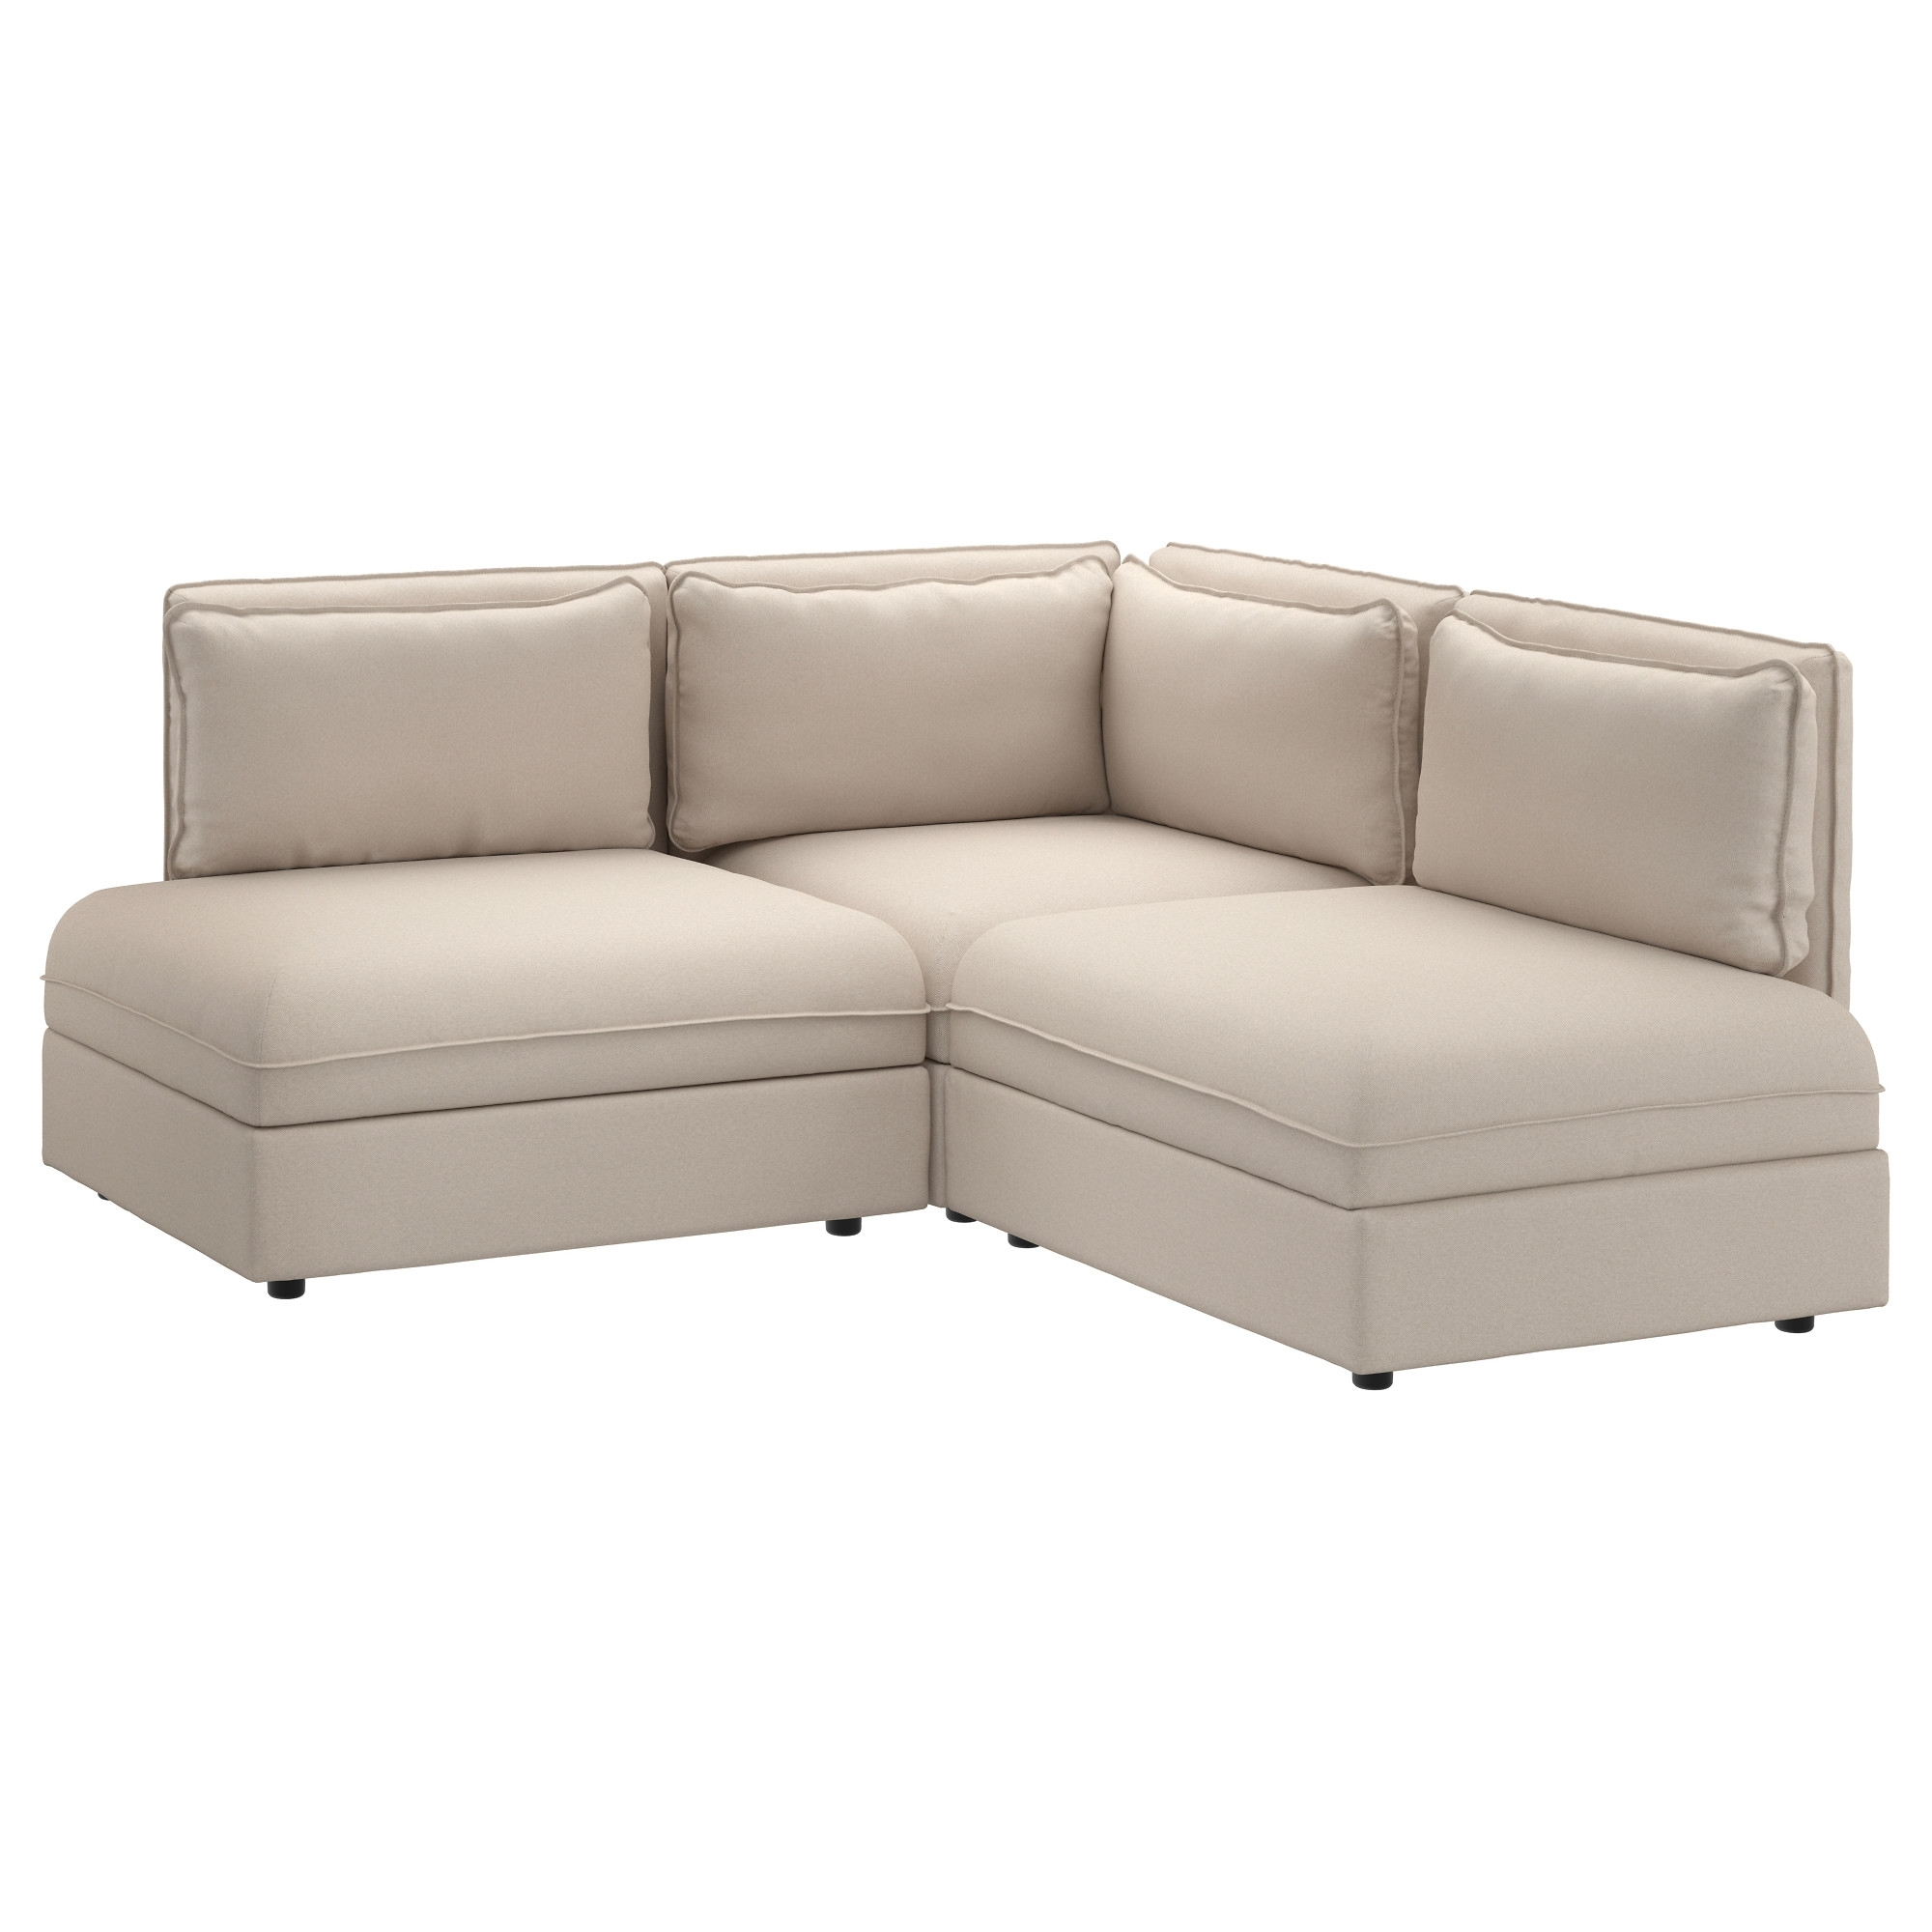 Vallentuna Sectional, 2 Seat – Murum Beige – Ikea Intended For Current Ikea Sectional Sofa Beds (View 18 of 20)